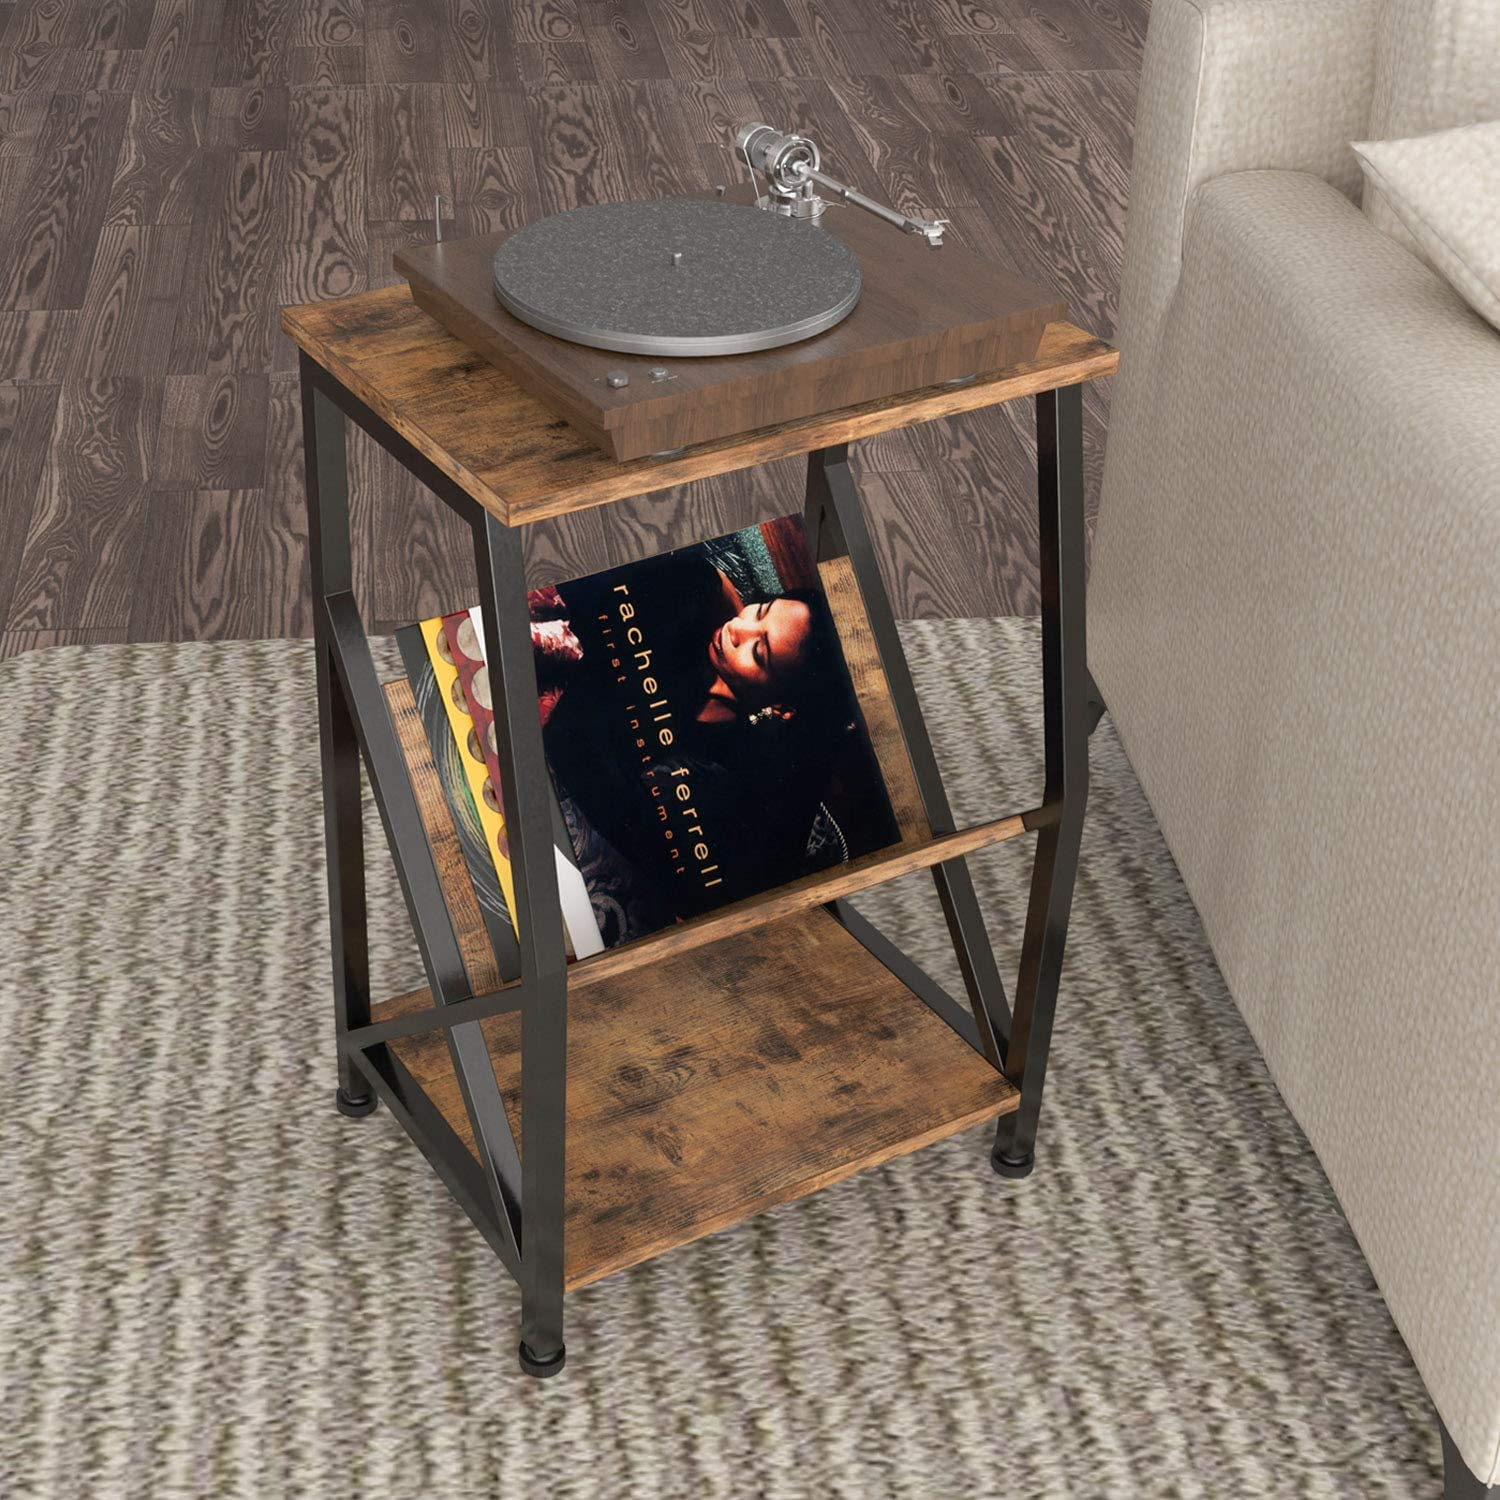 IRONCK Nightstand Side Tables Living Room, Record Player Stand with Storage Shelf Wood Look Industrial End Table, MDF Board with Metal Frame, Vintage Brown